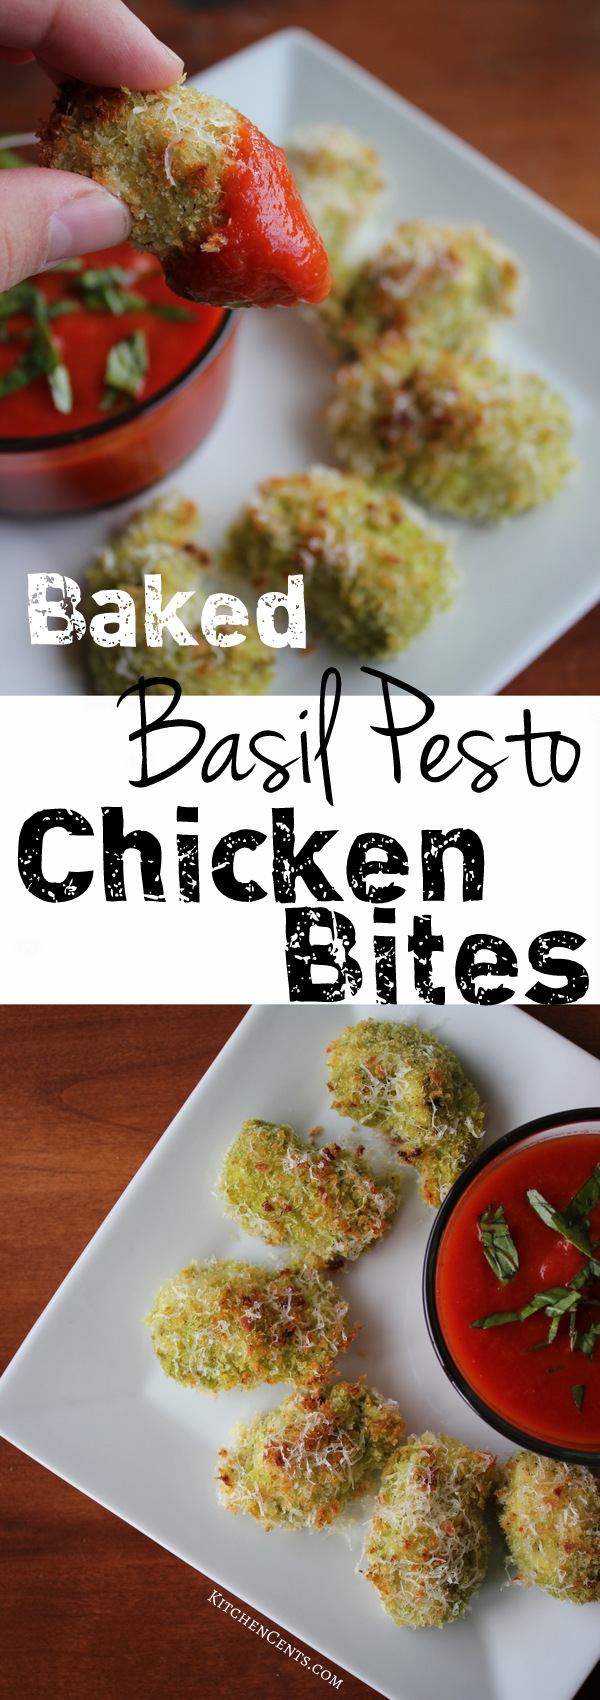 baked-basil-pesto-chicken-bites | kitchencents-com